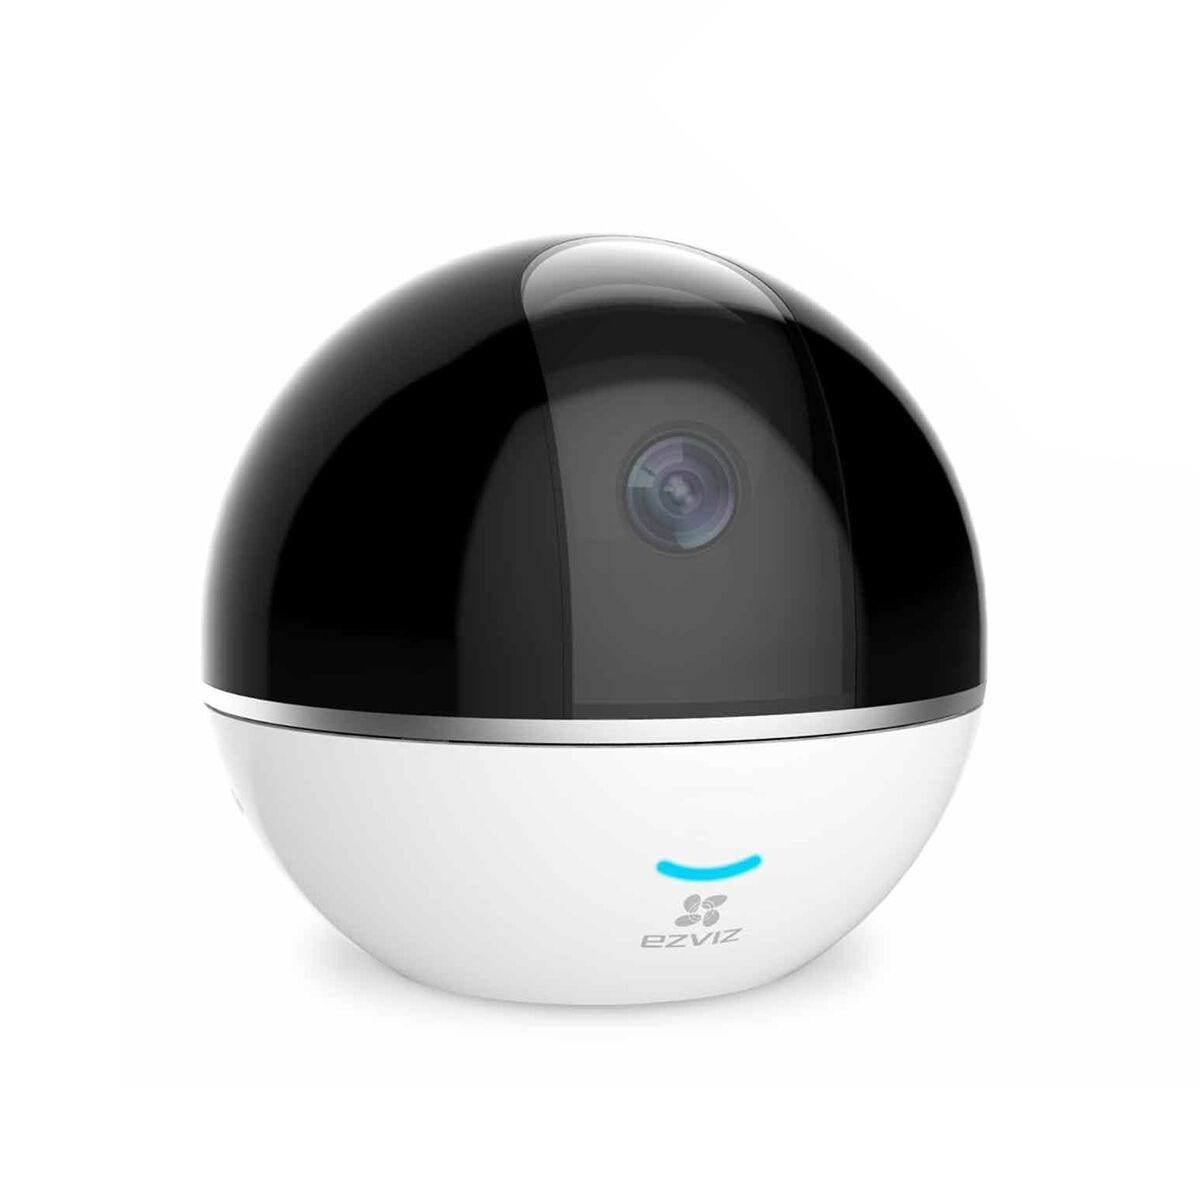 EZVIZ Full HD Wi-Fi Indoor Smart Home Security Camera with Motion Tracking and Pan/Tilt